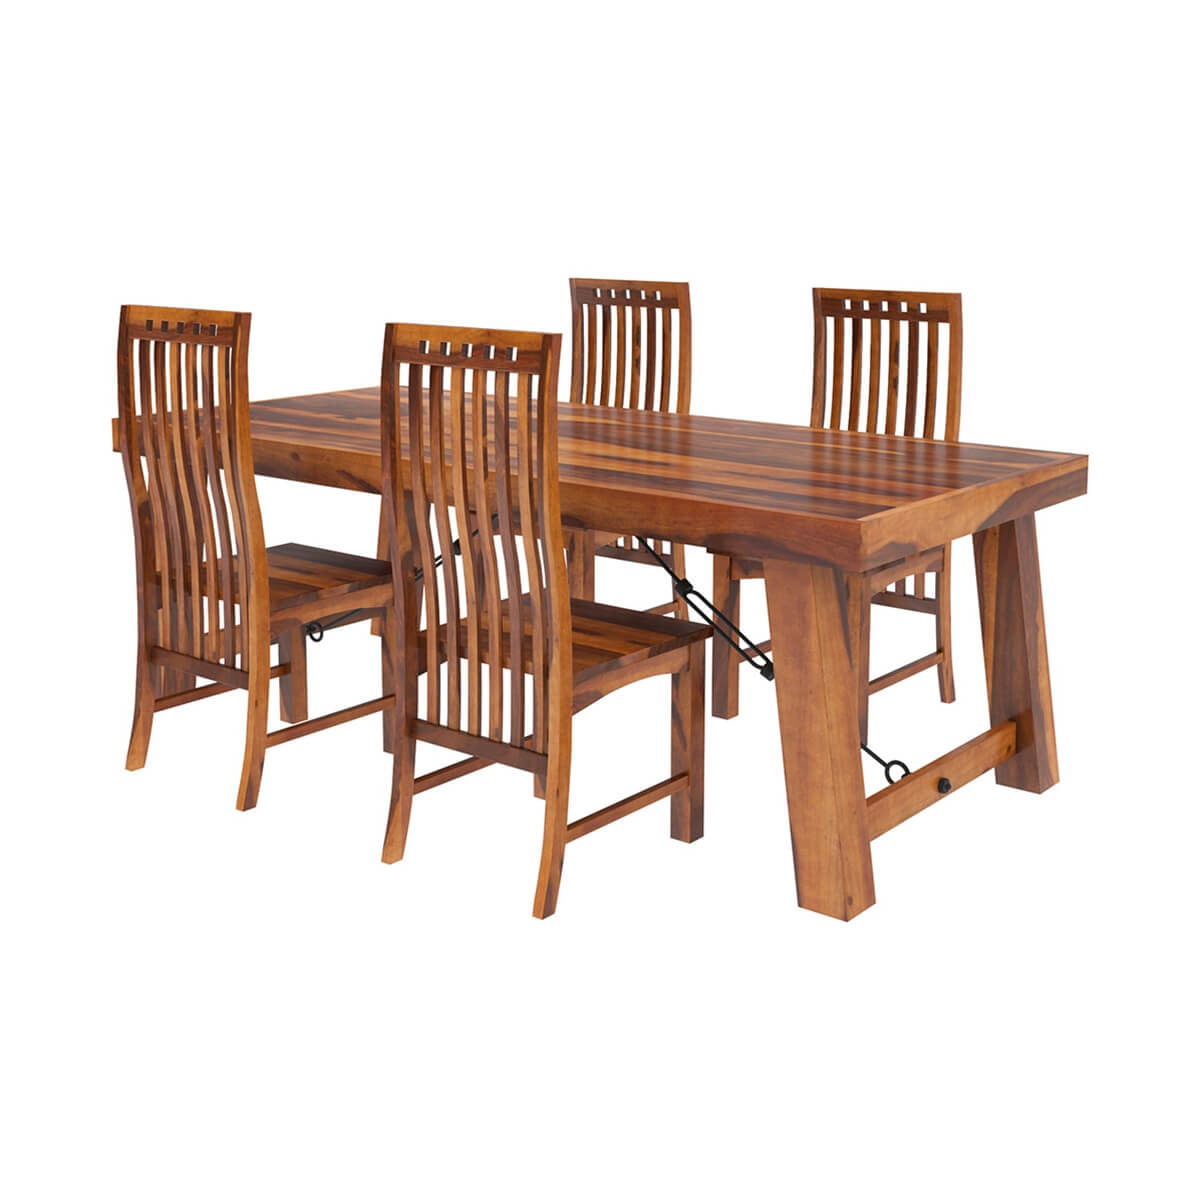 Transitional Dining Room Table: Lincoln 5pc Transitional Dining Room Table & Chair Set